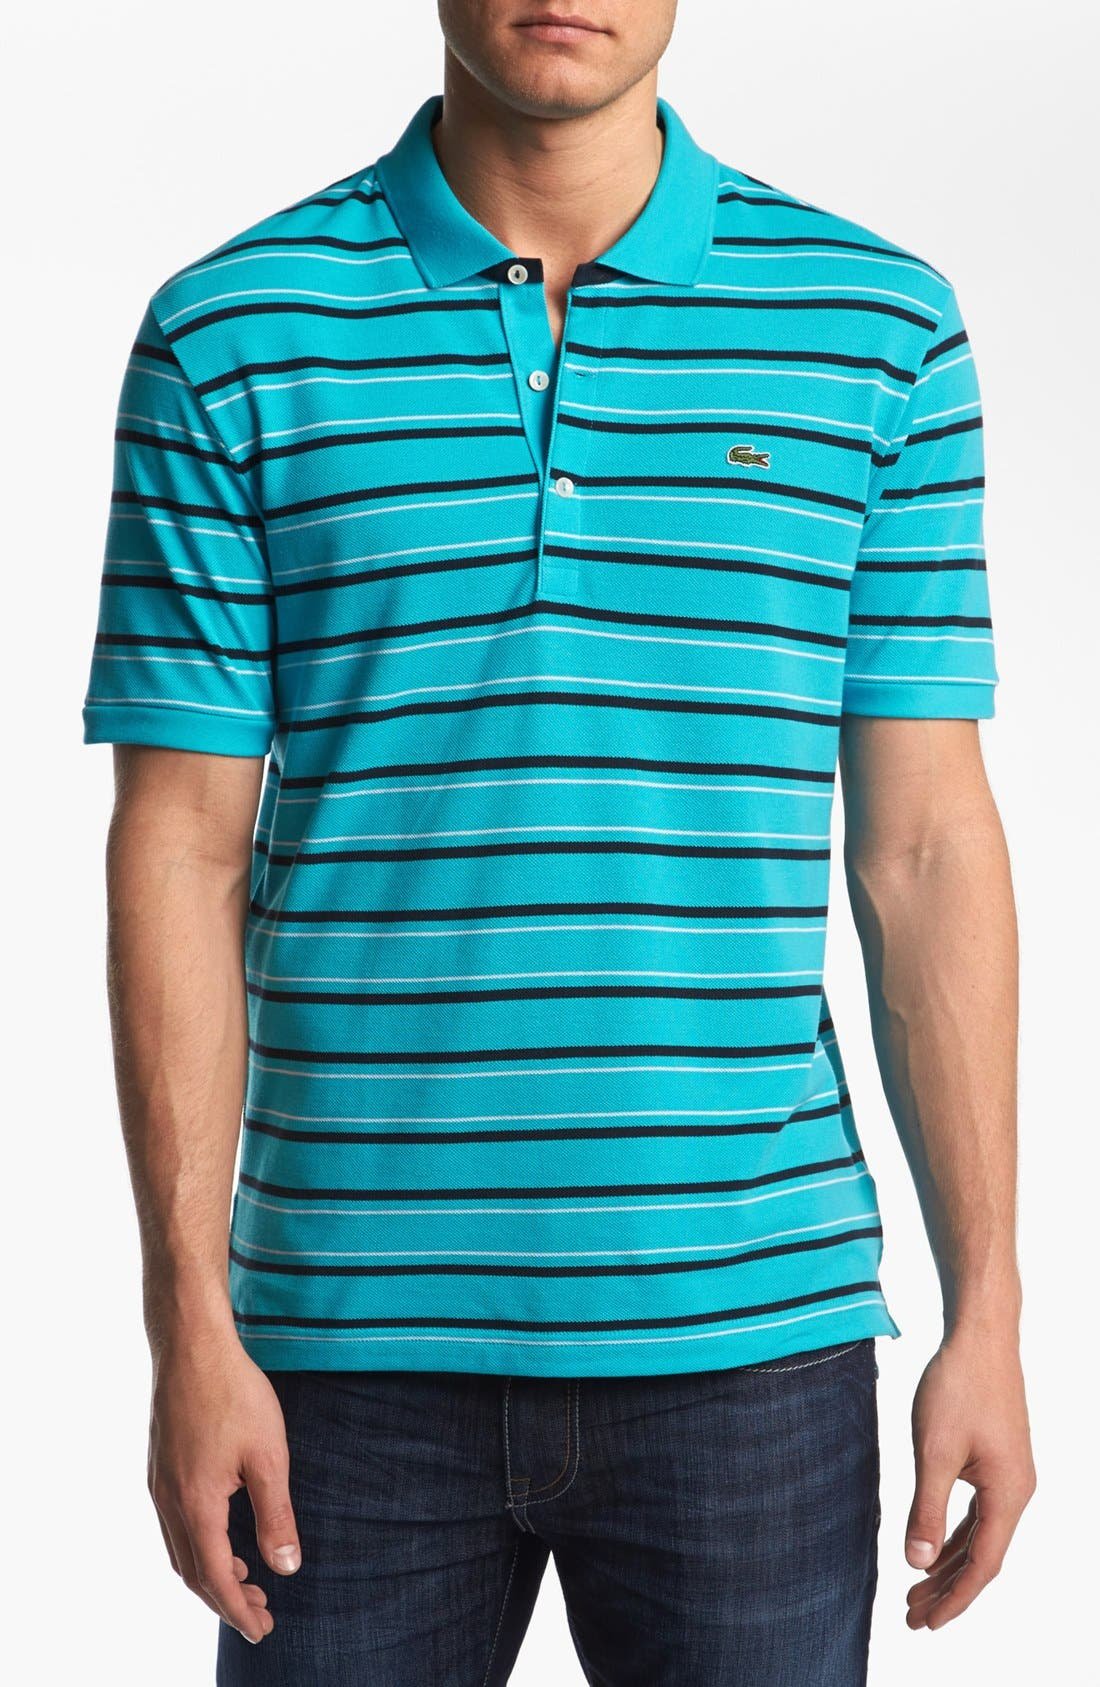 Alternate Image 1 Selected - Lacoste Stripe Piqué Polo